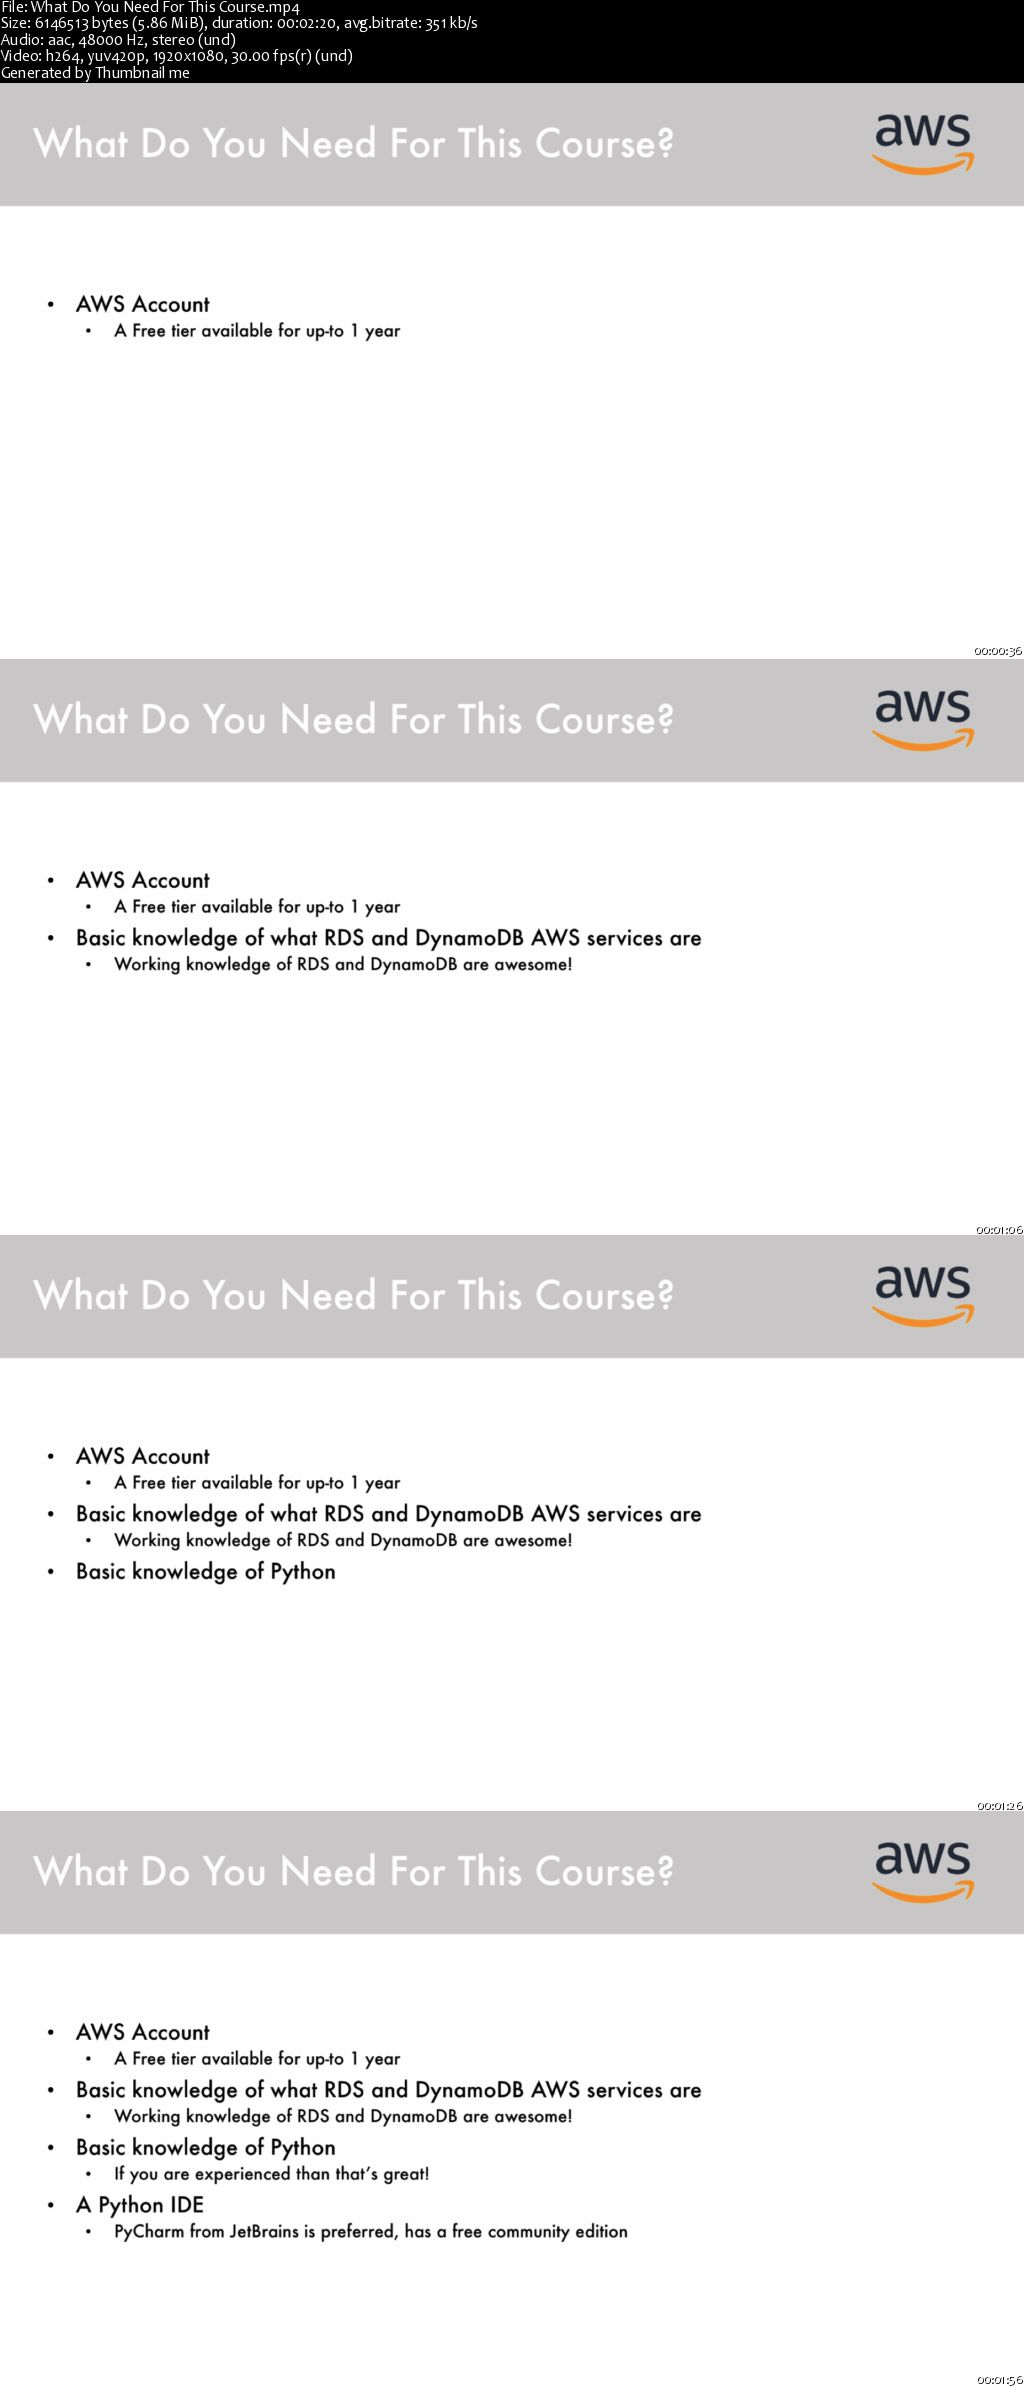 Download Work with RDS and DynamoDB: AWS with Python and Boto3